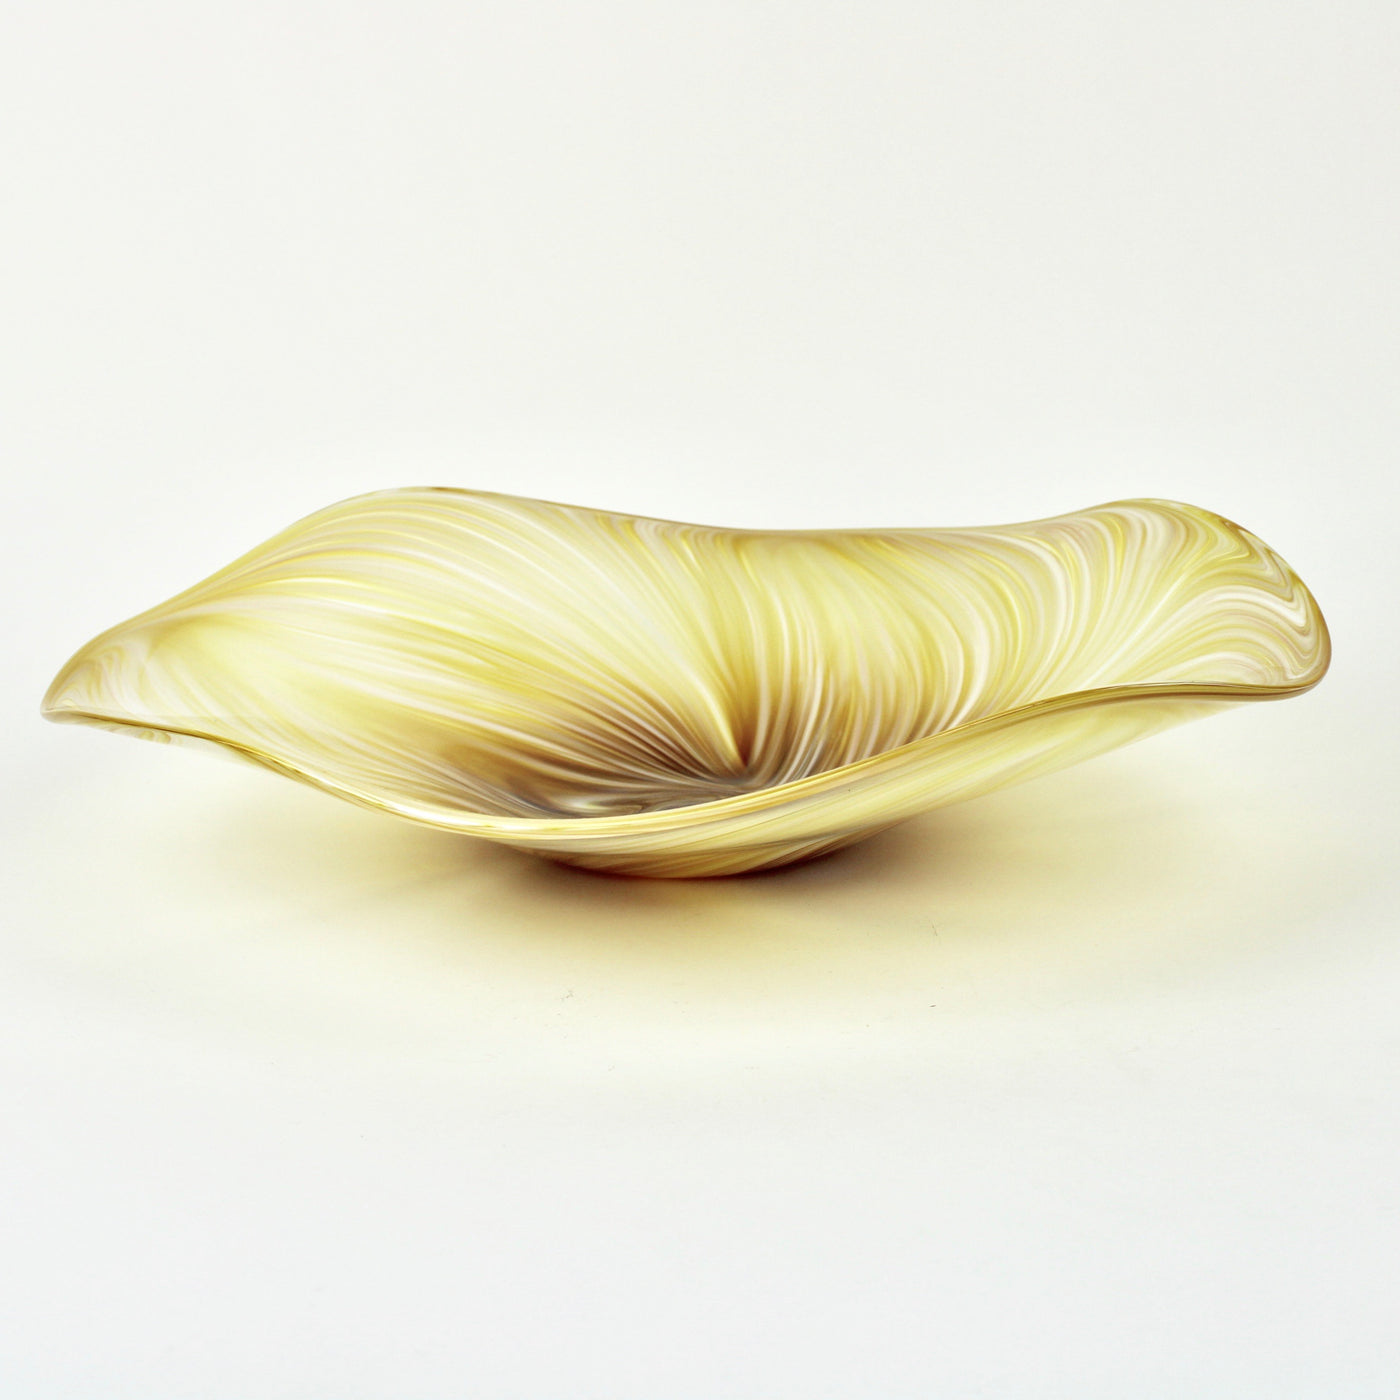 Mohua feather platter